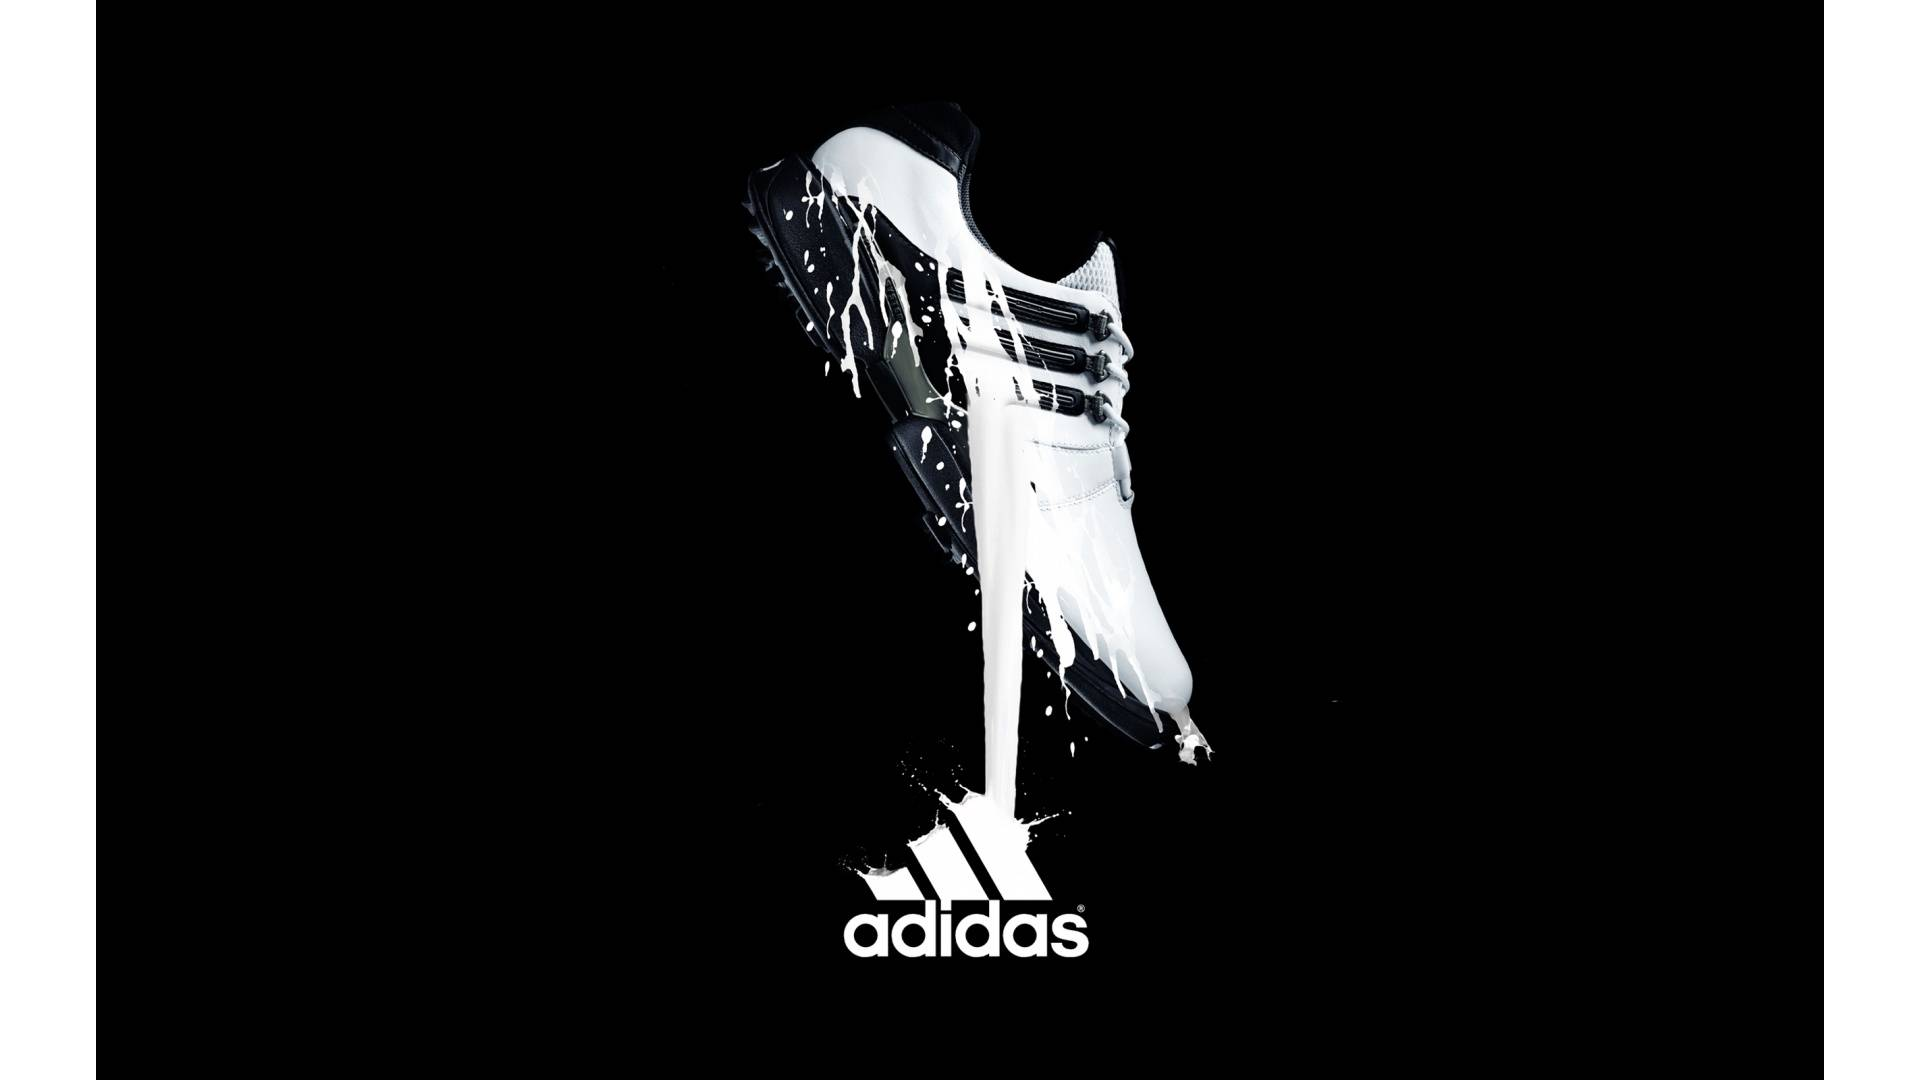 Adidas Shoes Wallpapers - Wallpaper Cave